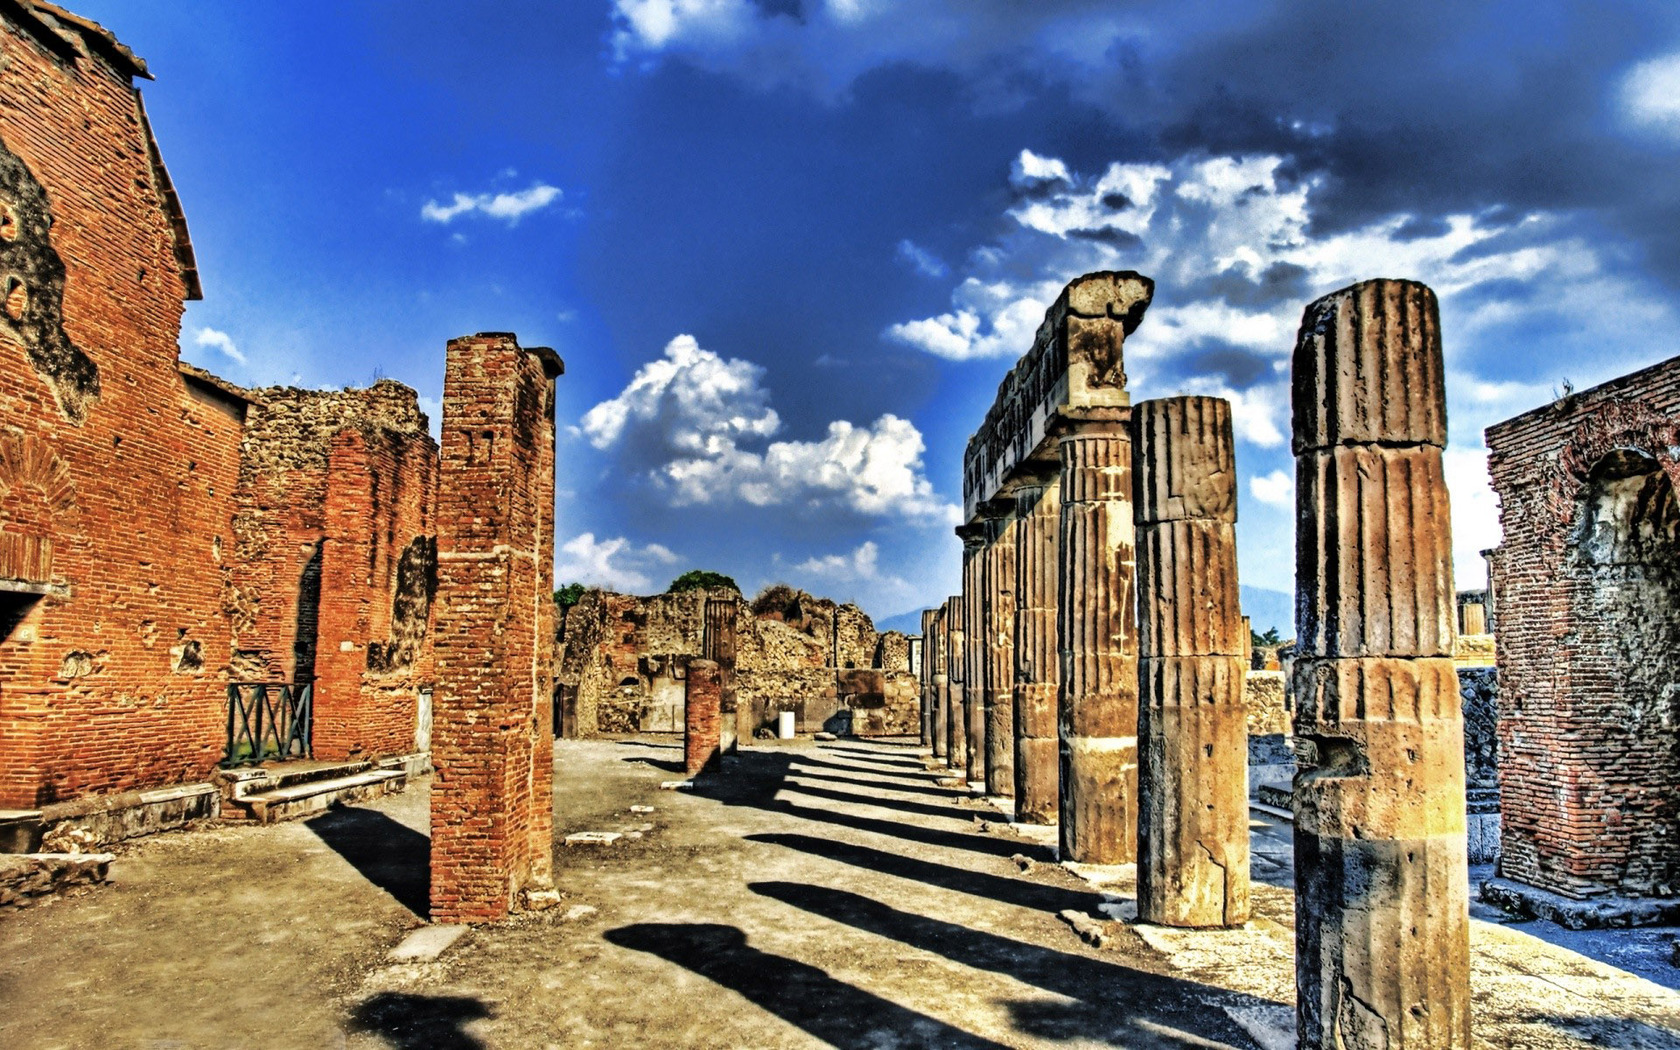 Best 55 Pompeii Wallpaper on HipWallpaper Pompeii Wallpaper 1680x1050